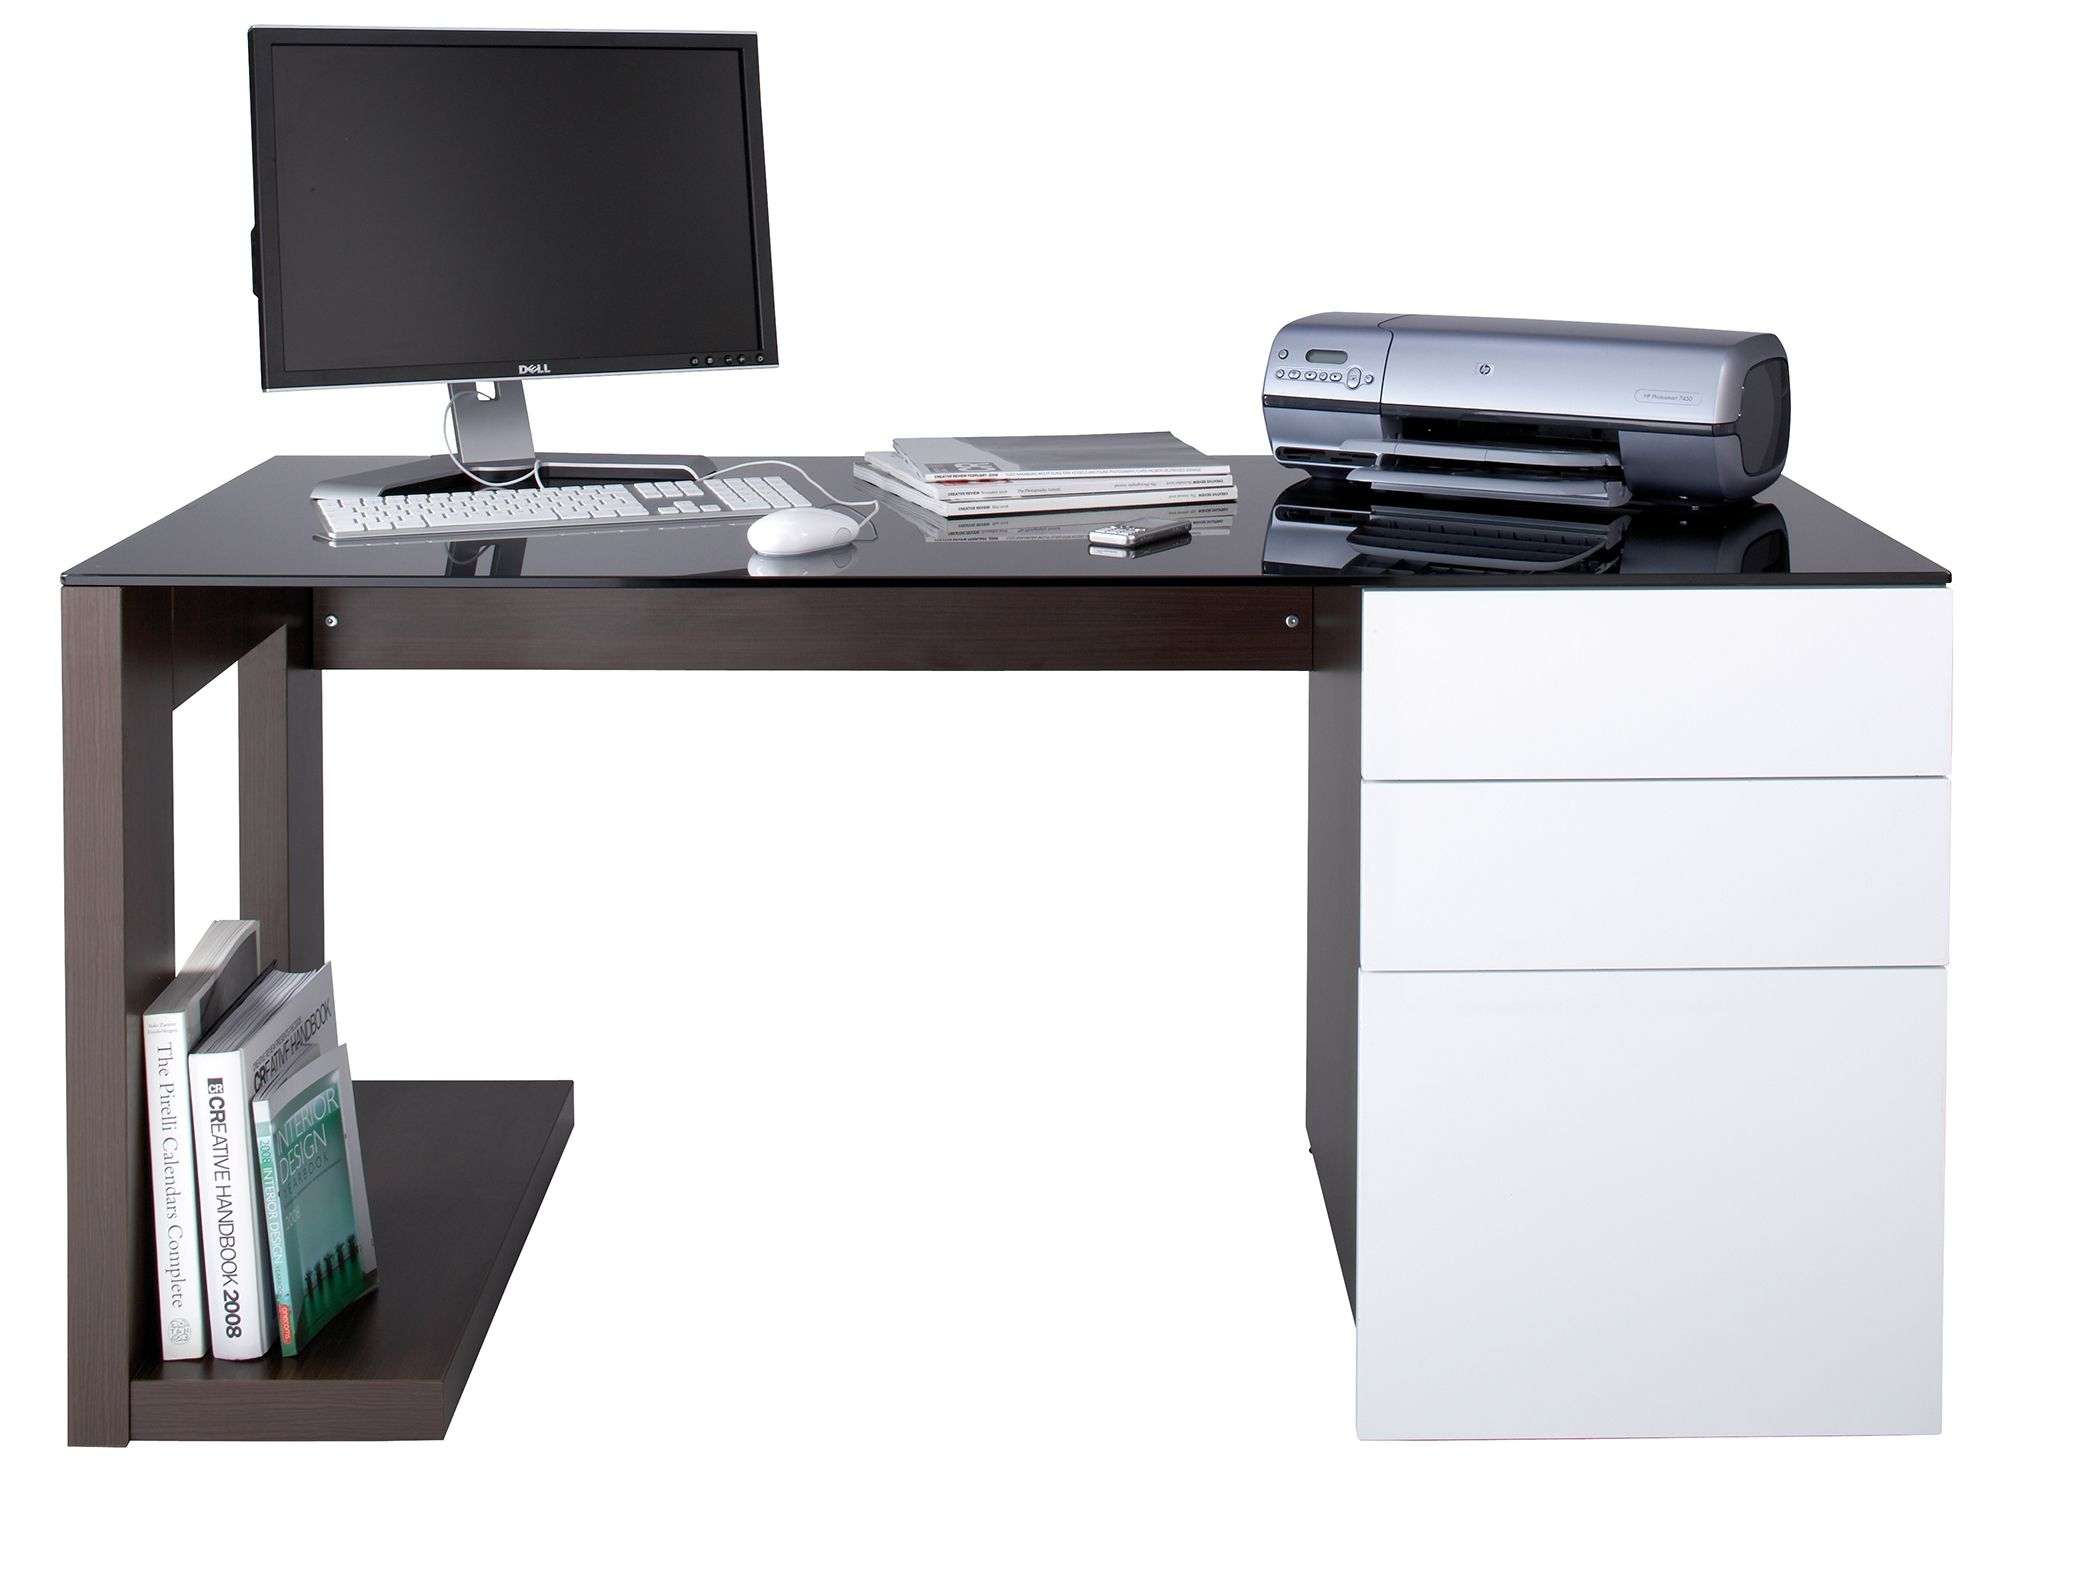 standing football desks office desksoffice max down up full tickets chair cool officemax sit co for desk stand ideas image